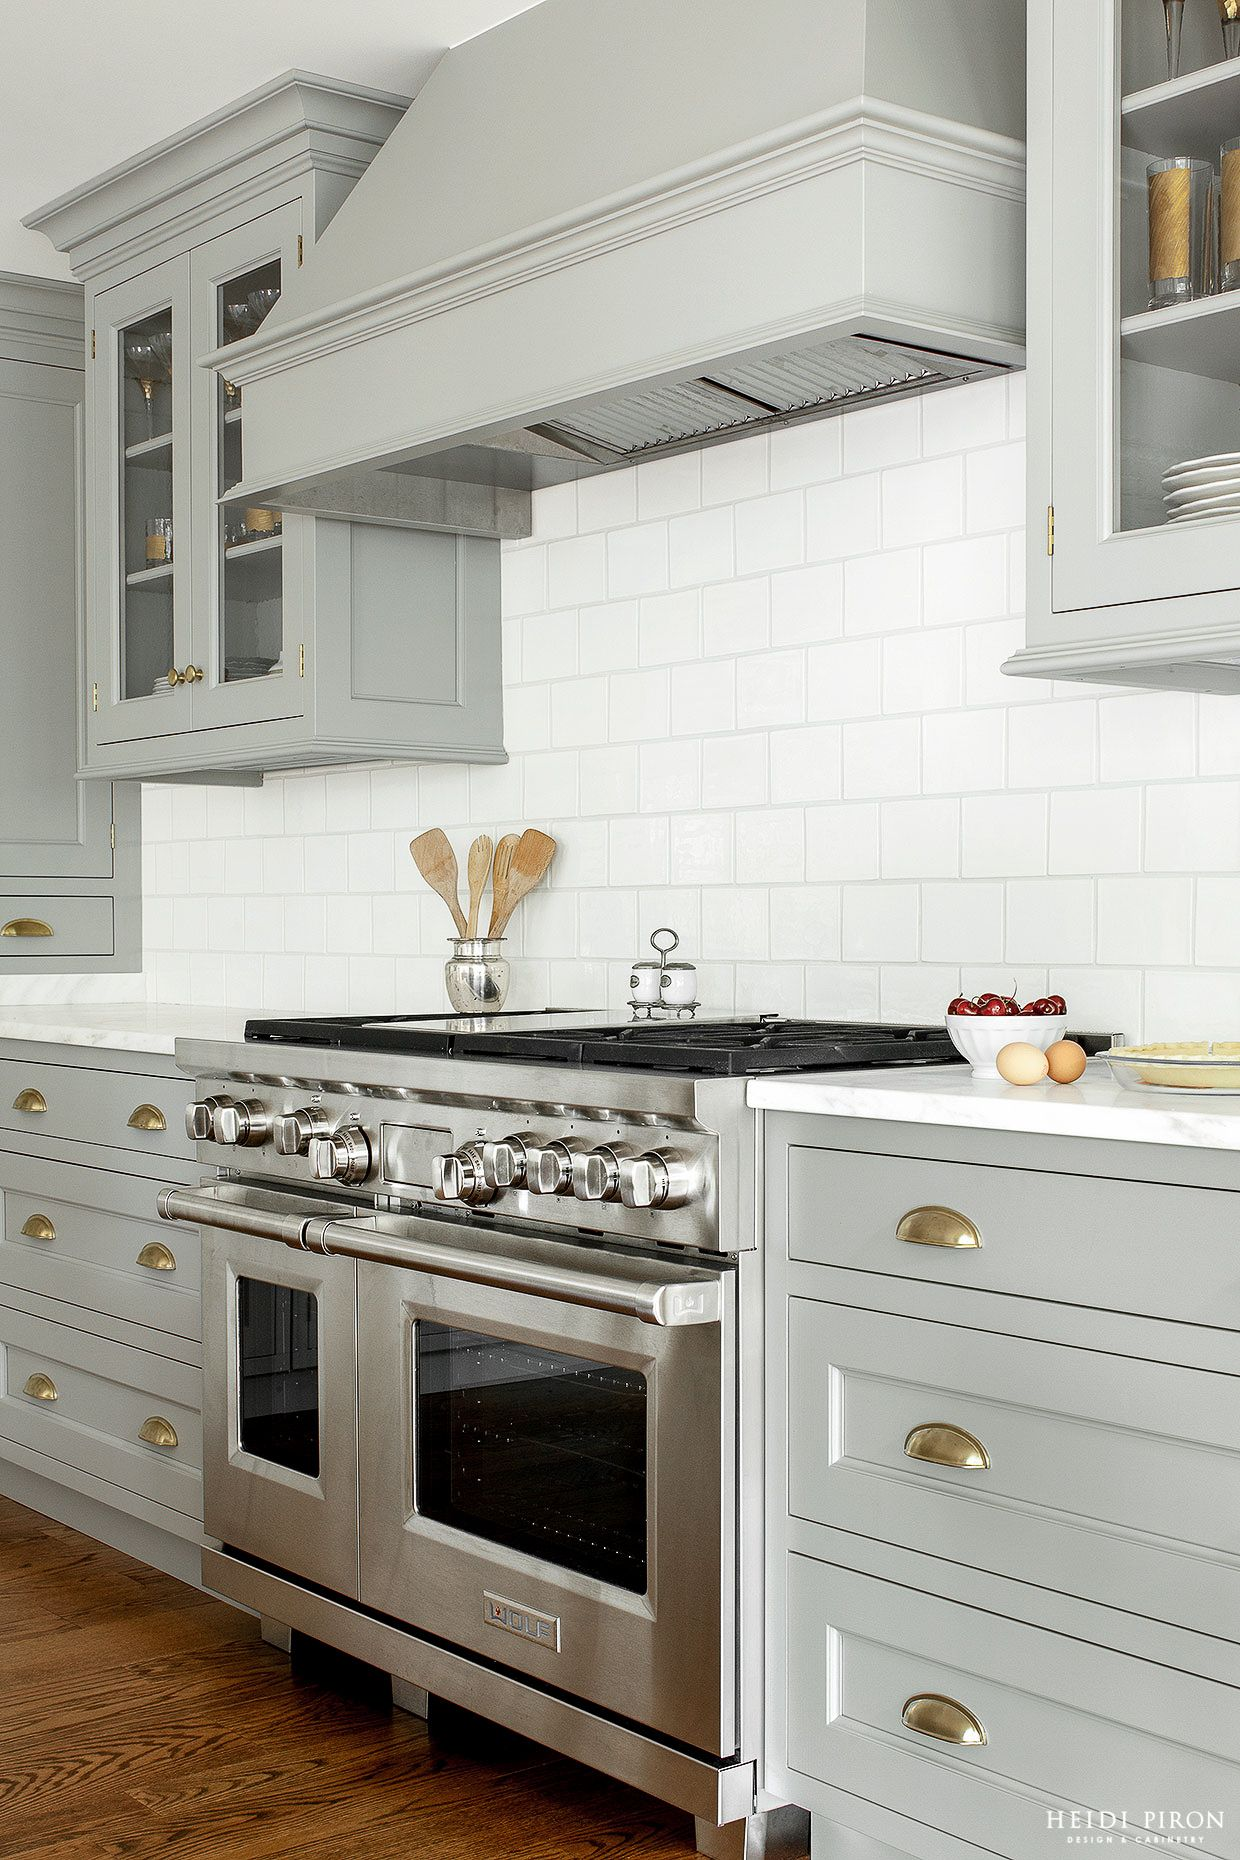 Heidi Piron Design And Cabinetry Painted Gray With Brass Hardware - Hardware for grey cabinets